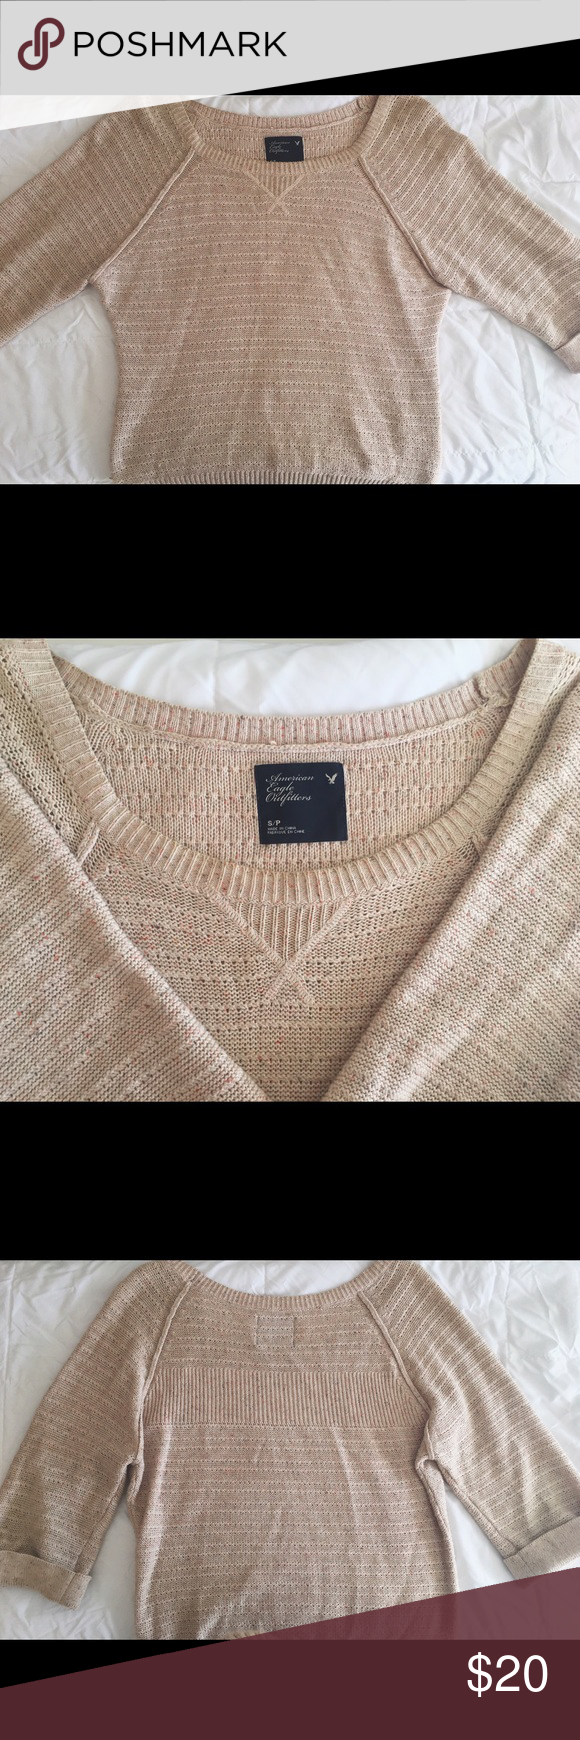 American Eagle Oatmeal Sweater Three-quarter sleeves. Soft, knitted fabric. Tan, oatmeal color with hints of pink. Lightly worn. American Eagle Outfitters Sweaters Crew & Scoop Necks